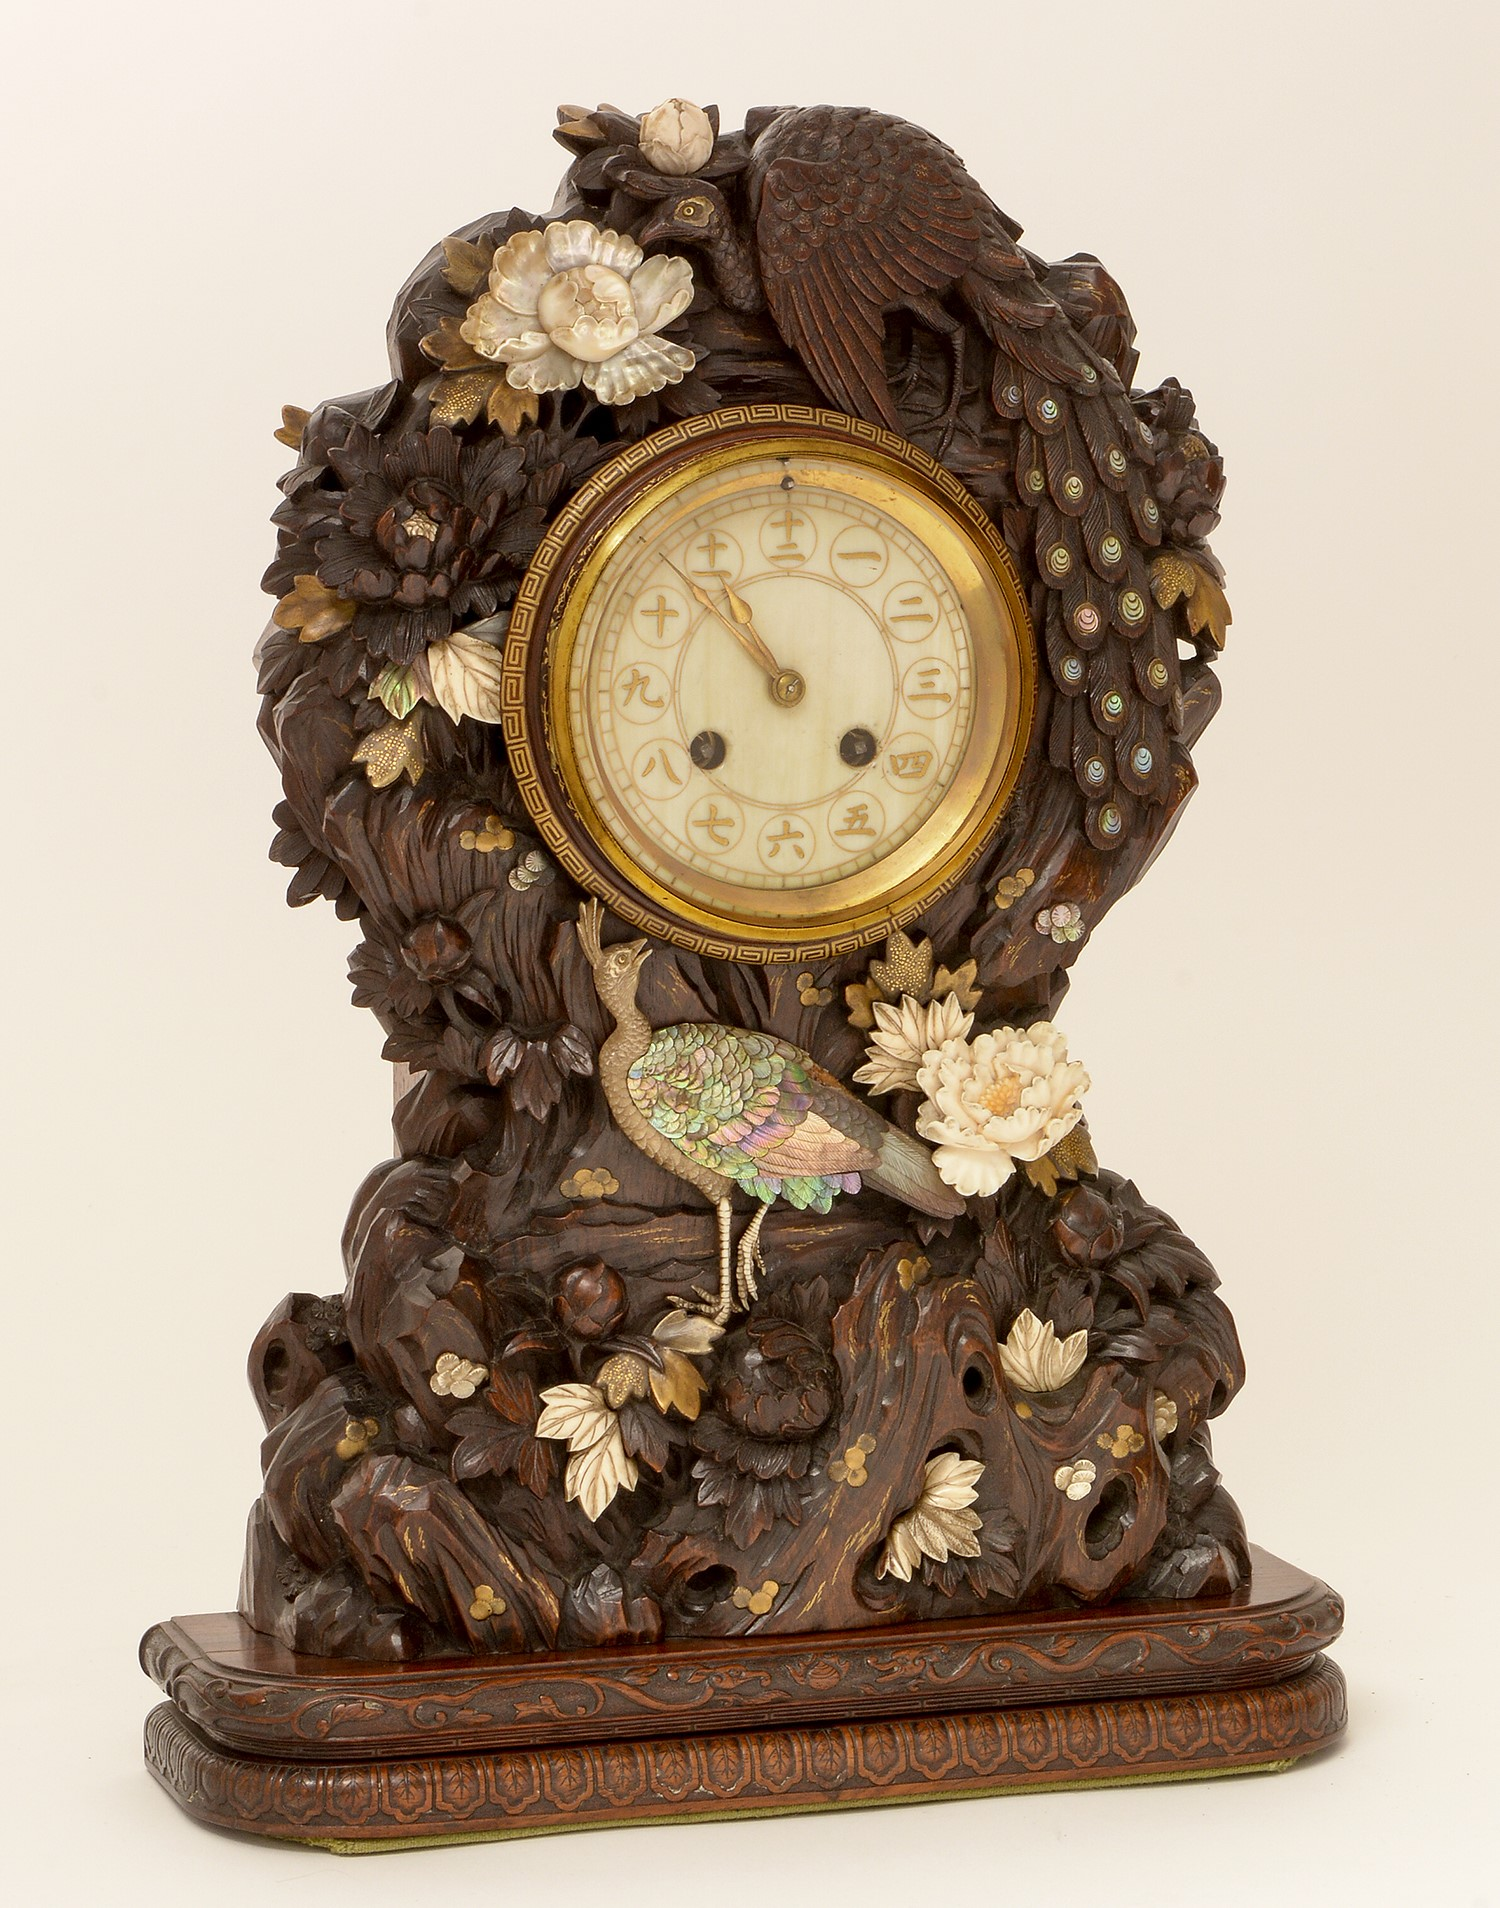 A rare and unusual Japanese carved hardwood and shibayama mantel clock, Meiji period, the circular ivory dial with Kanji numerals, Japy Freres